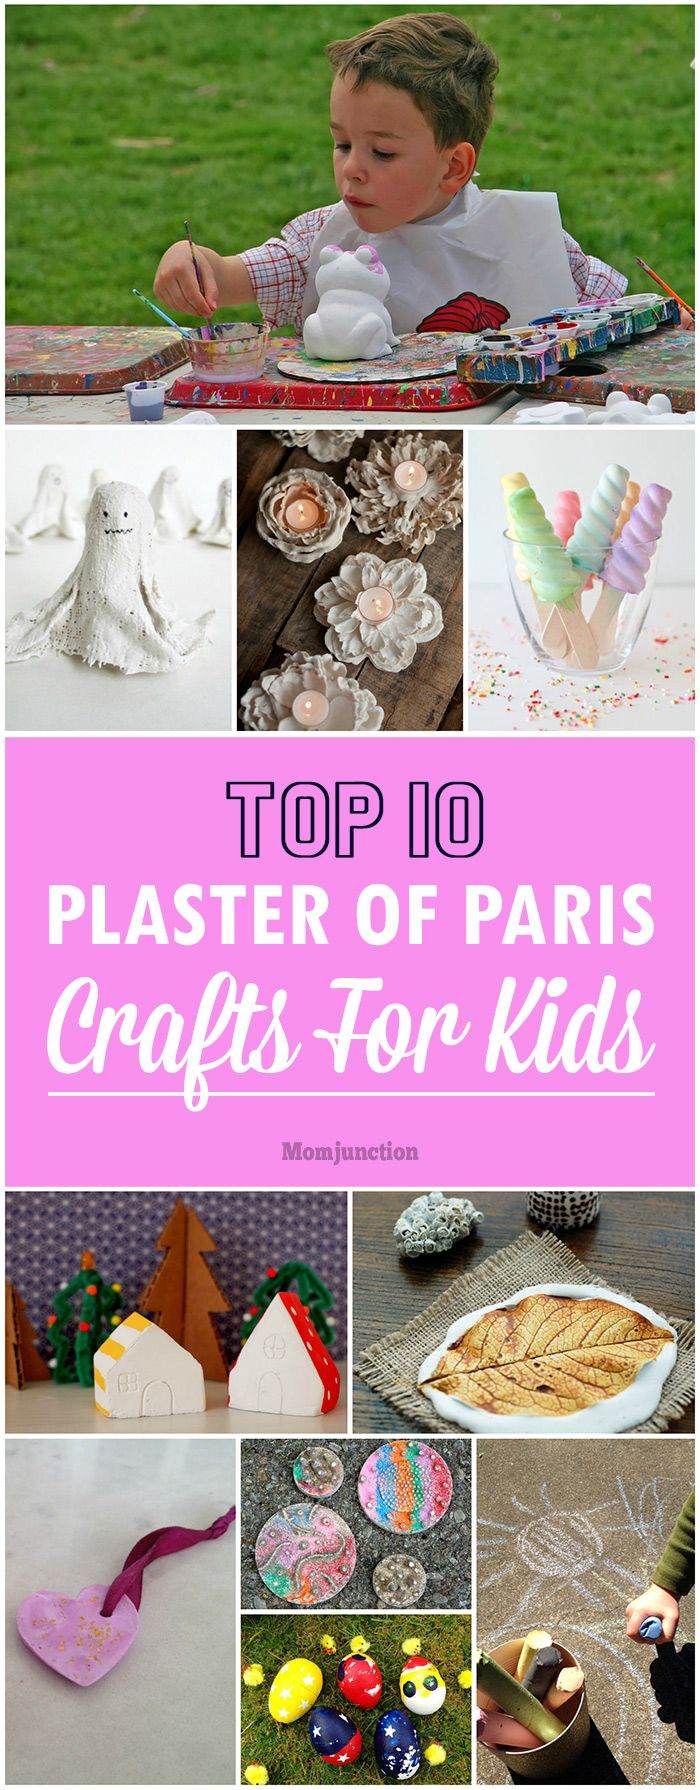 Top 10 Plaster Of Paris Crafts For Kids: The result will be a smooth piece of art with fine details. So, here are ten craft that kids can try making with Plaster of Paris.